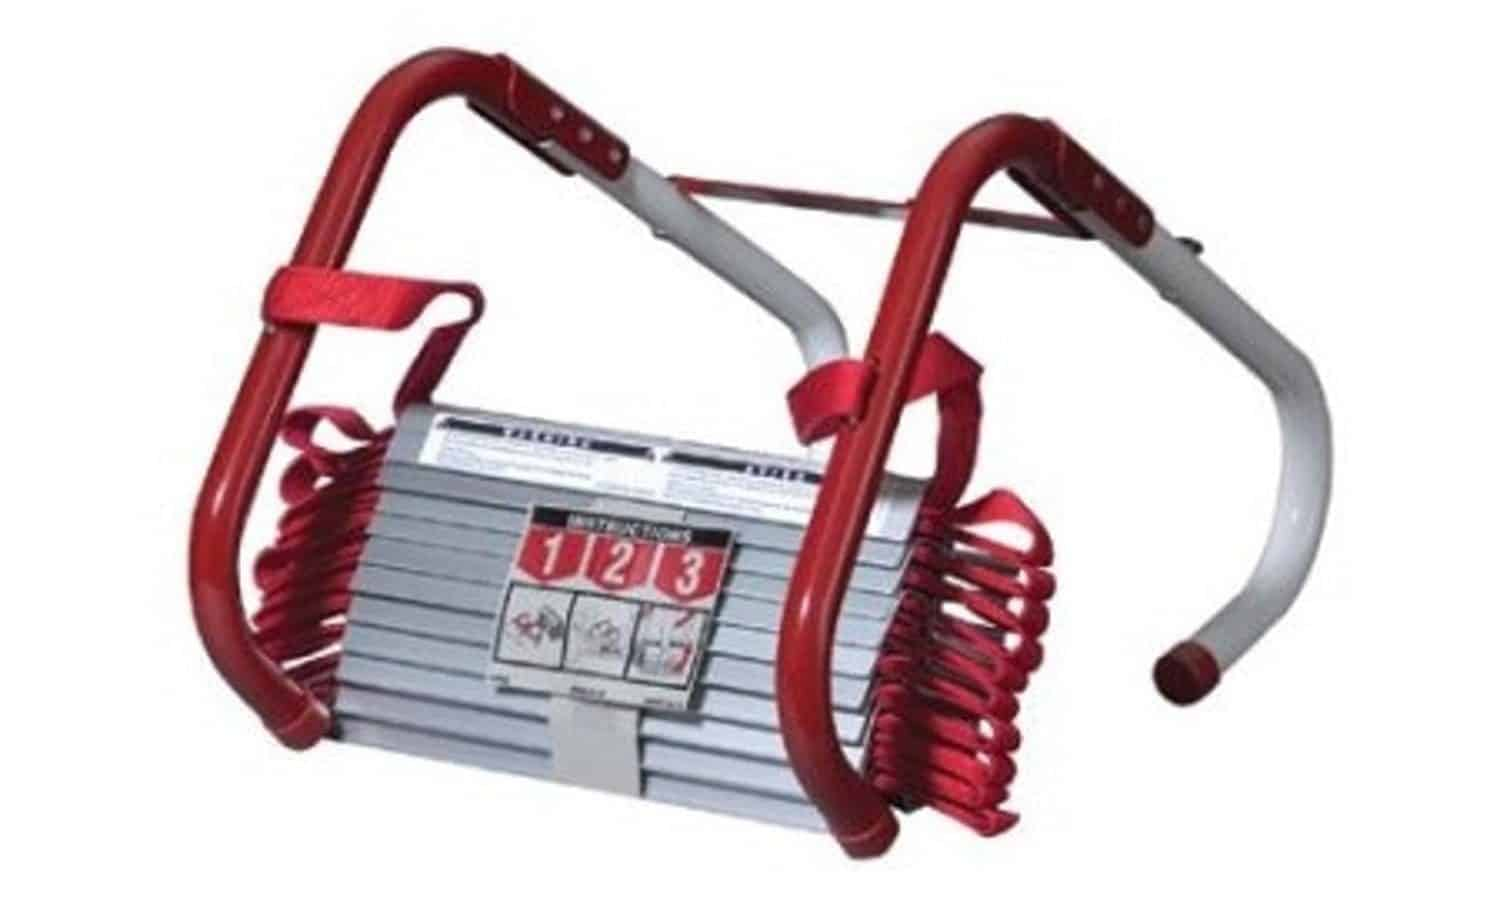 Fire escape ladder with tangle-free design.